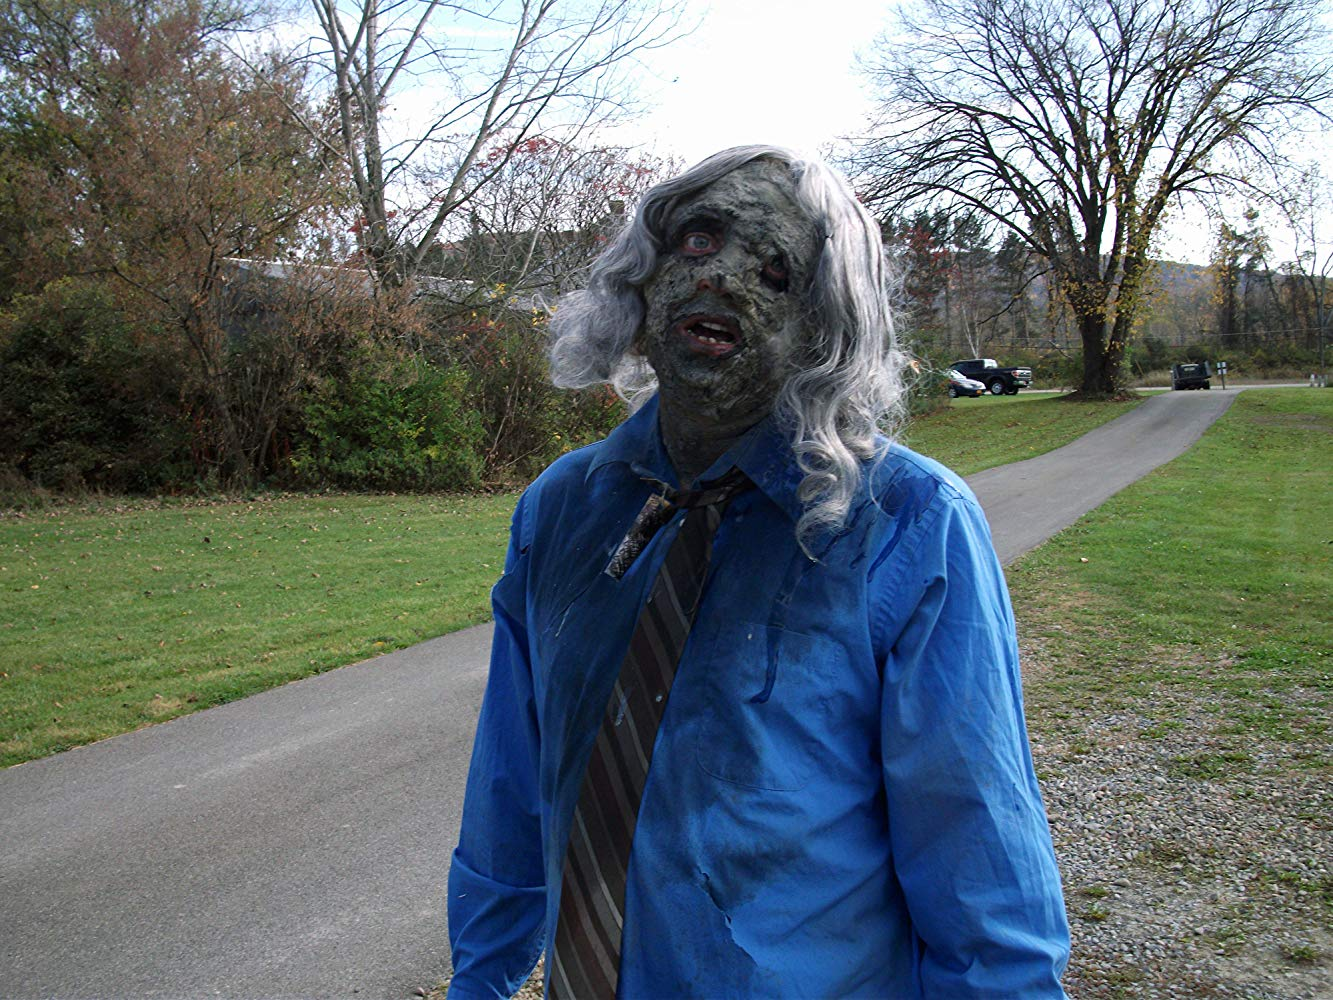 A zombie from Bigfoot vs Zombies (2016)